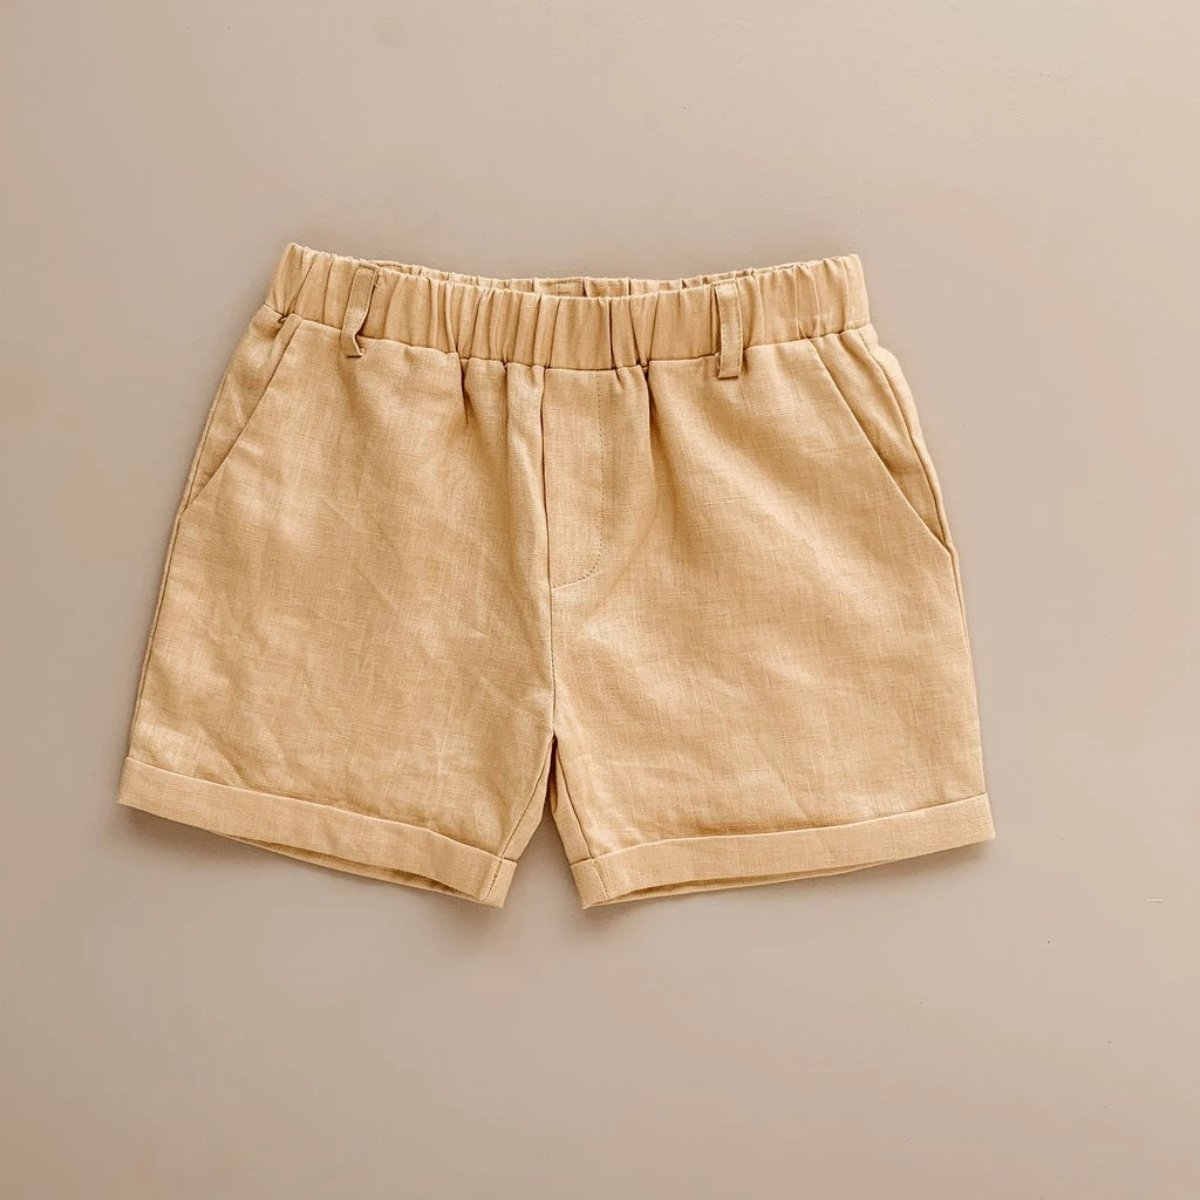 US stockist of Two Darlings golden linen chino shorts